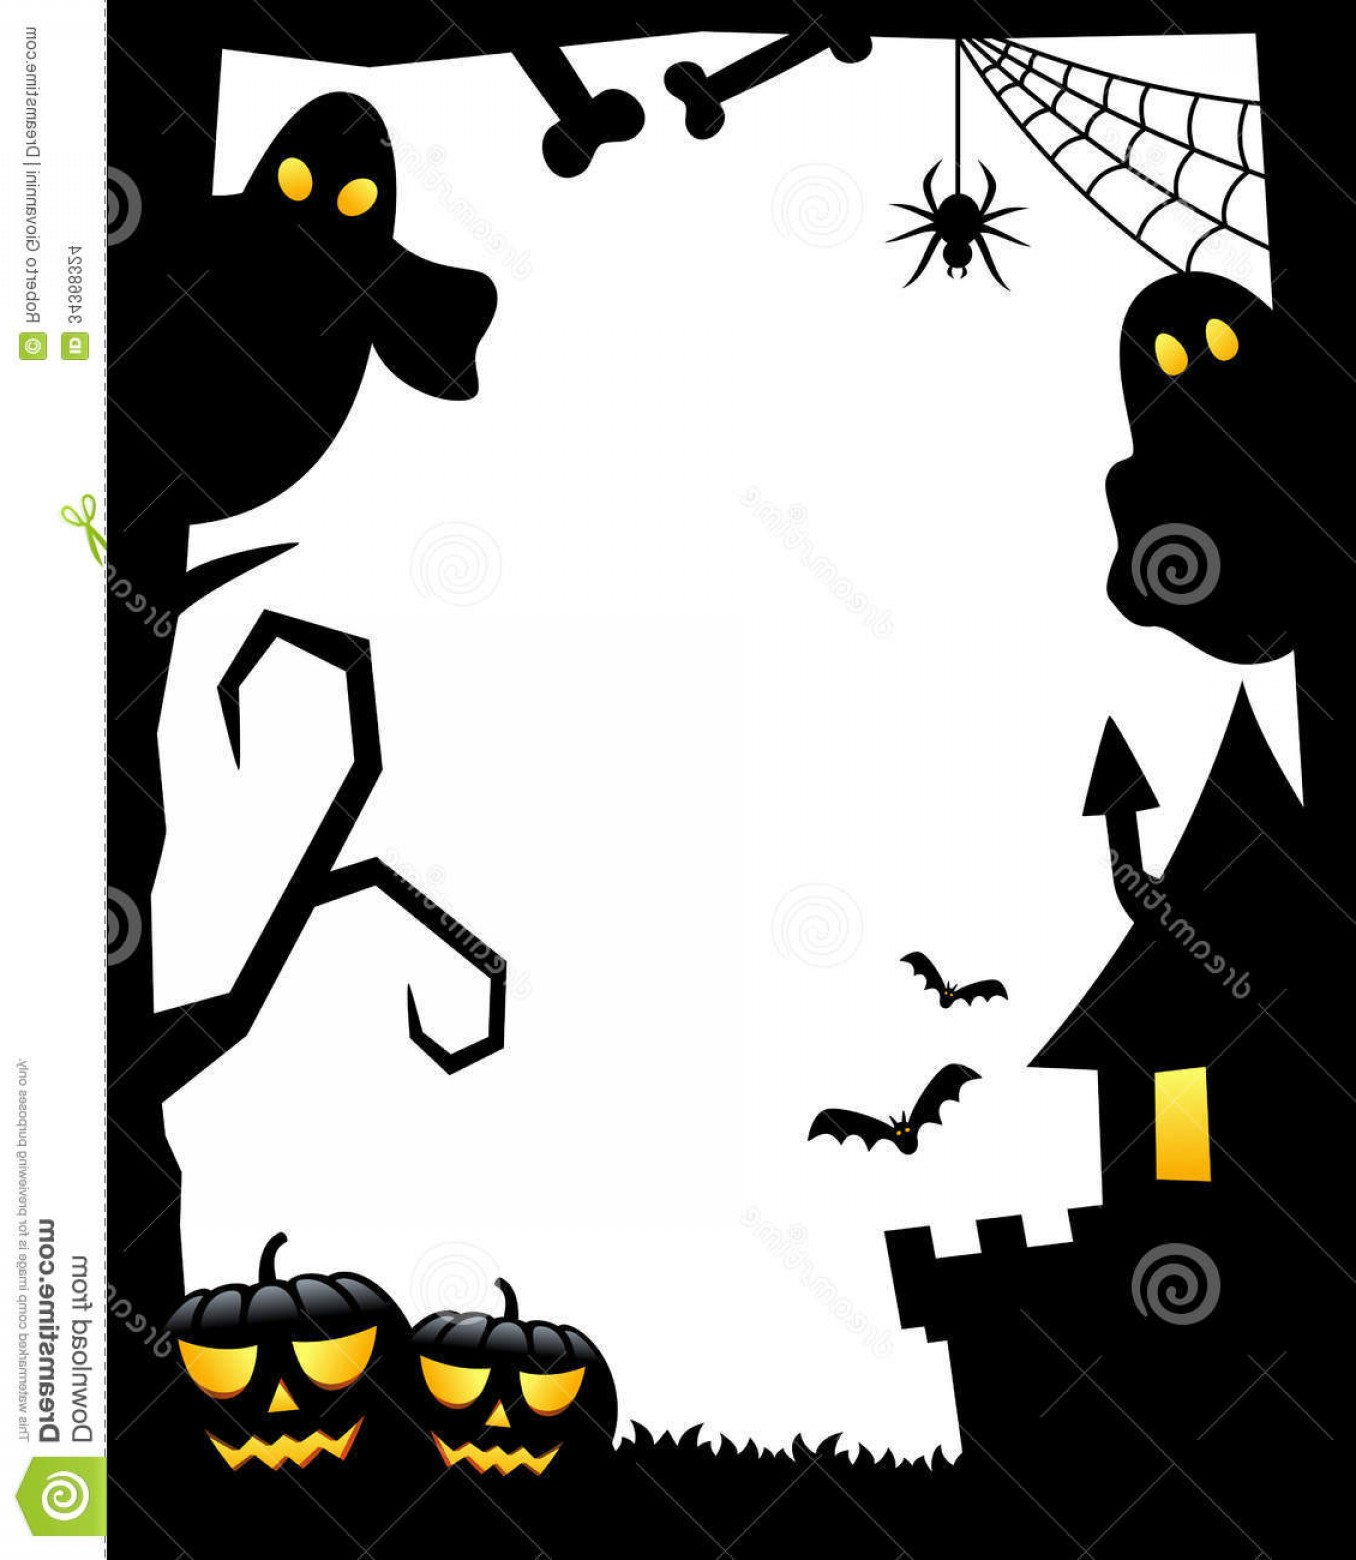 Halloween Haunted House Silhouette Vector: Stock Images Halloween Silhouette Frame Vertical White Background Scary Elements Bats Flying Ghosts Haunted House Spider Bones Image